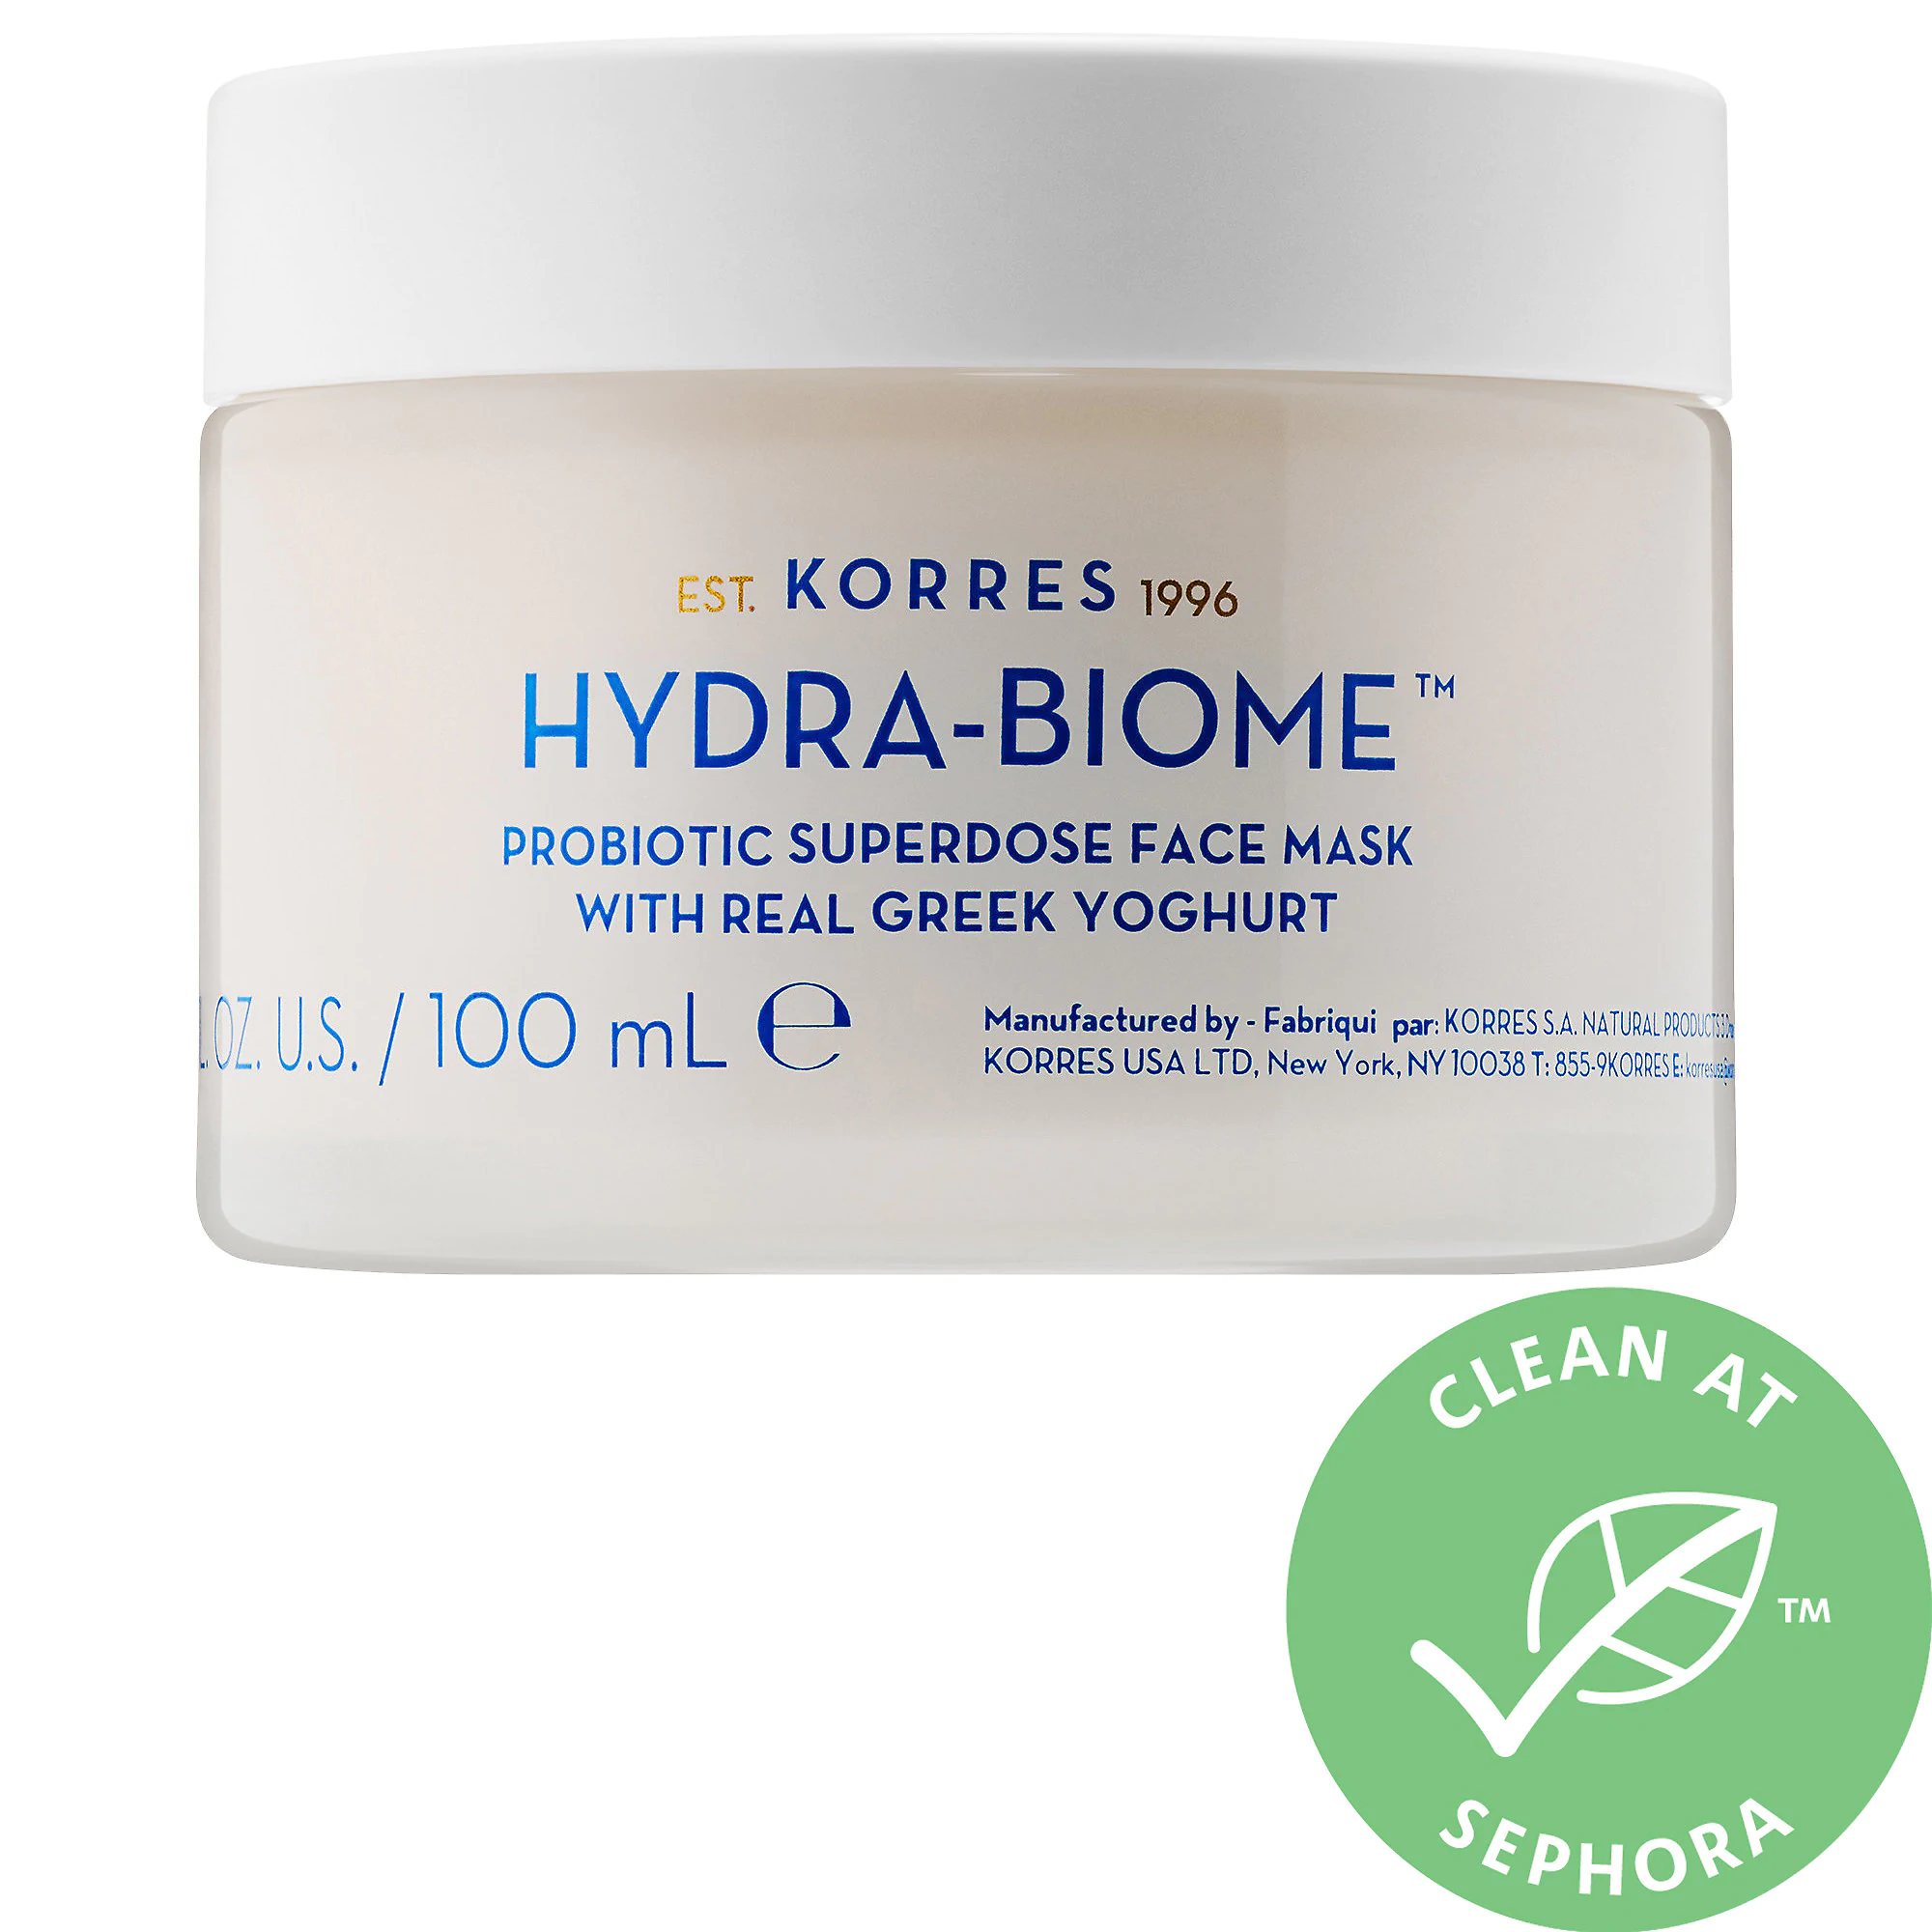 KORRES Hydra Biome Probiotic Superdose Face Mask With Real Greek Yoghurt